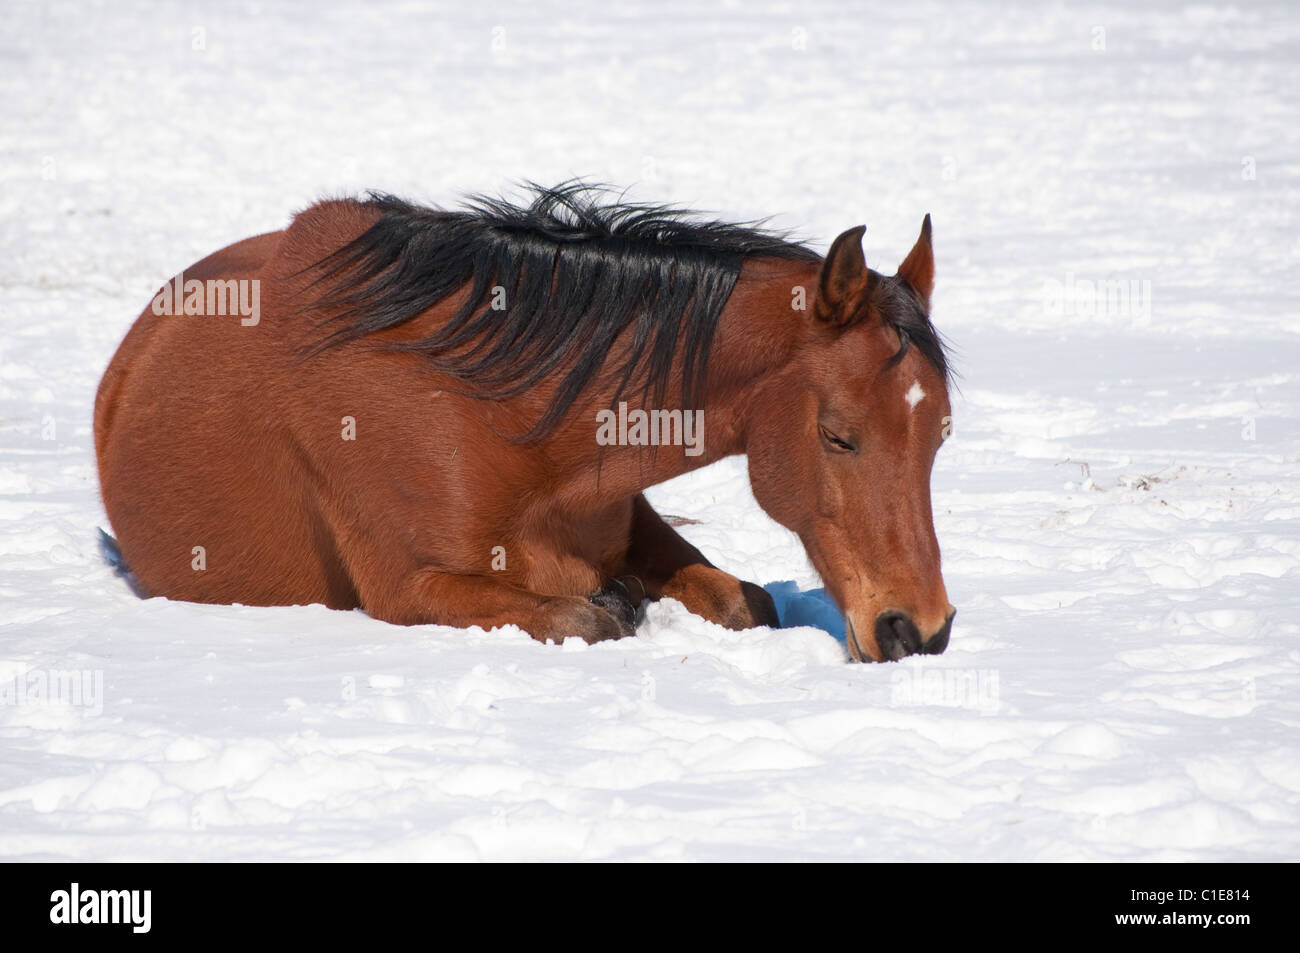 Red bay horse sleeping on snow on a bright winter day - Stock Image